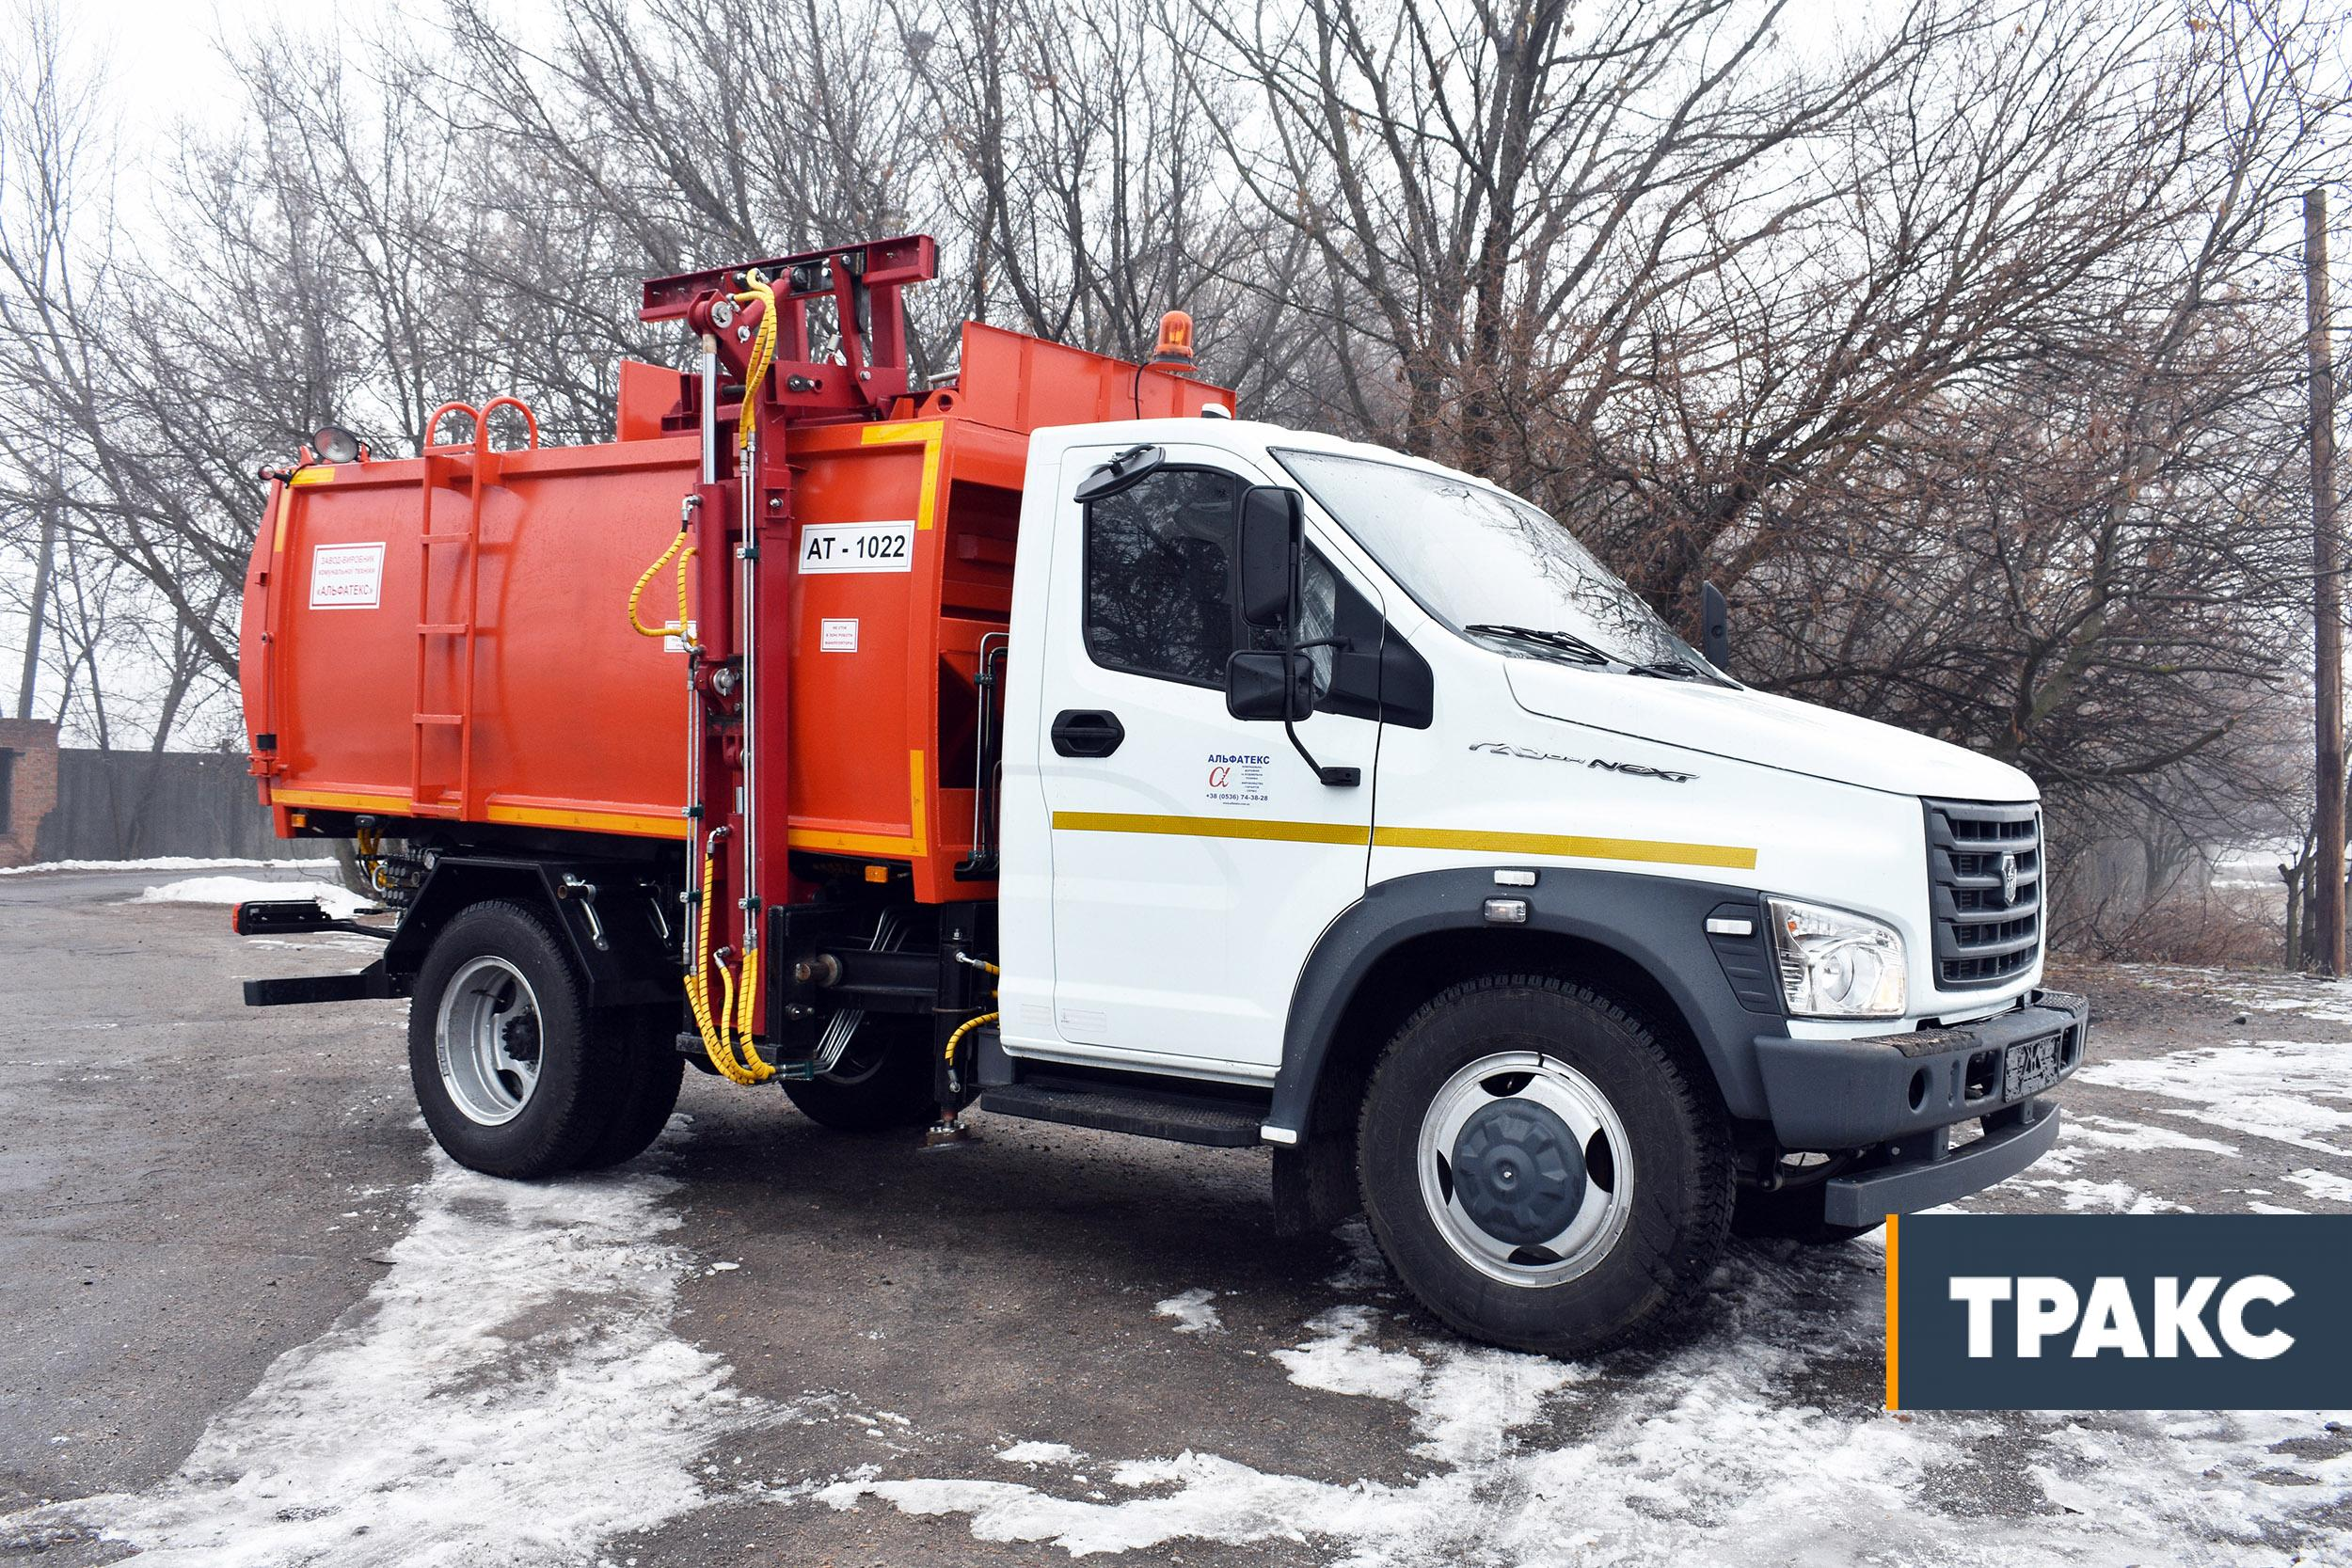 Garbage-truck-with-side-loading-AT-1022-on-the-chassis-GAZ-С41R13-1